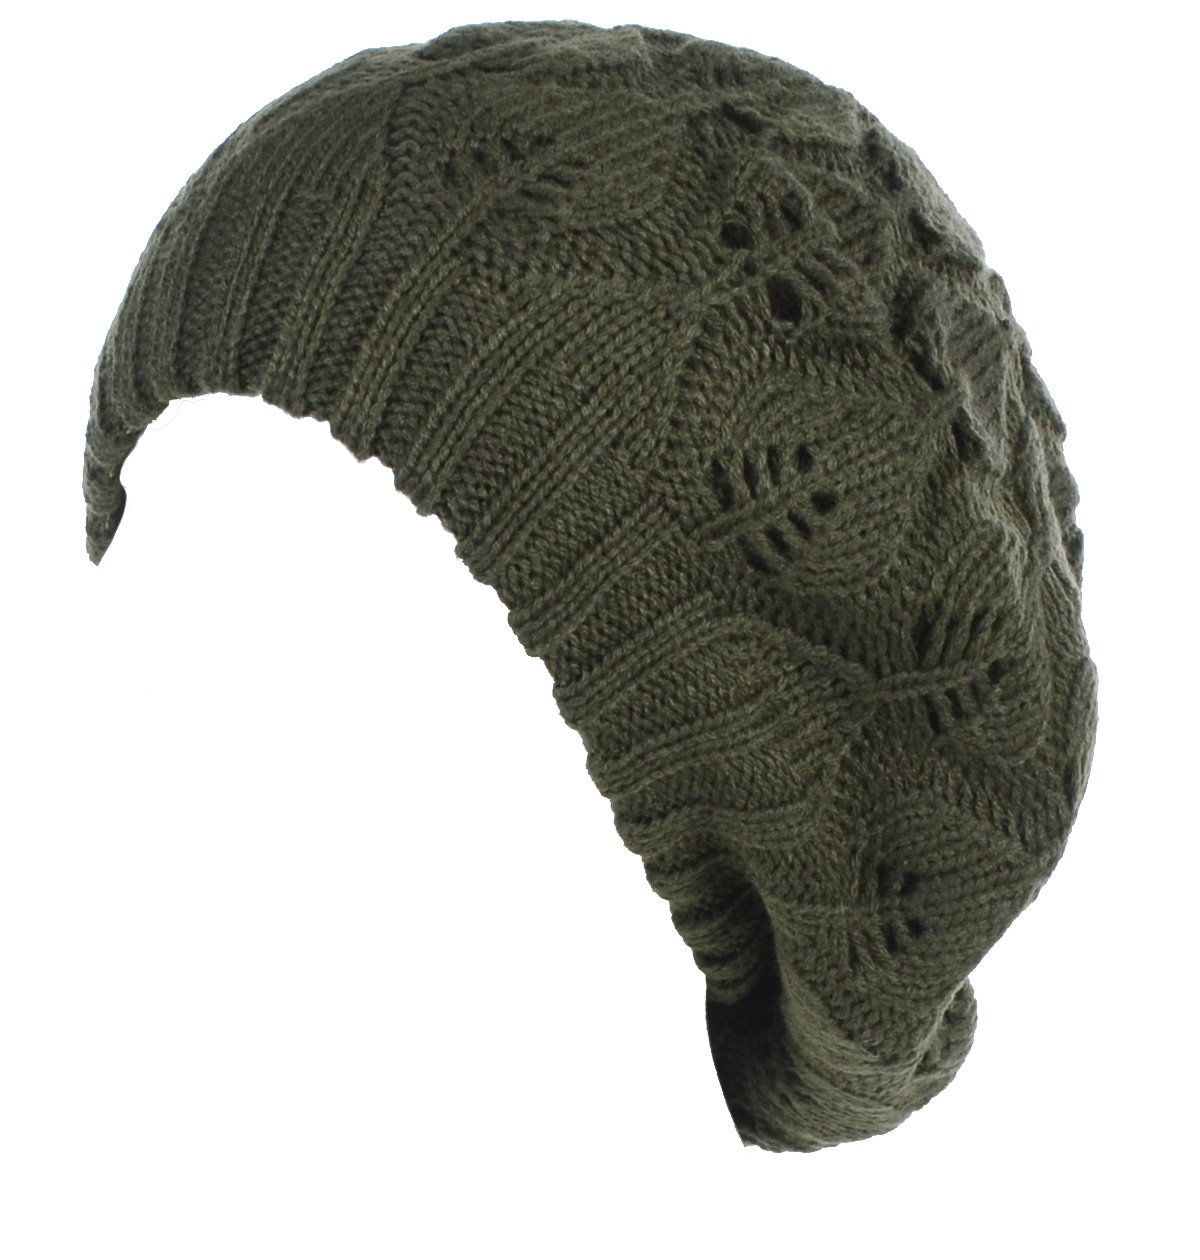 BYOS Winter Chic Warm Double Layer Leafy Cutout Crochet Knit Slouchy Beret Beanie Hat (Olive Green Leafy)